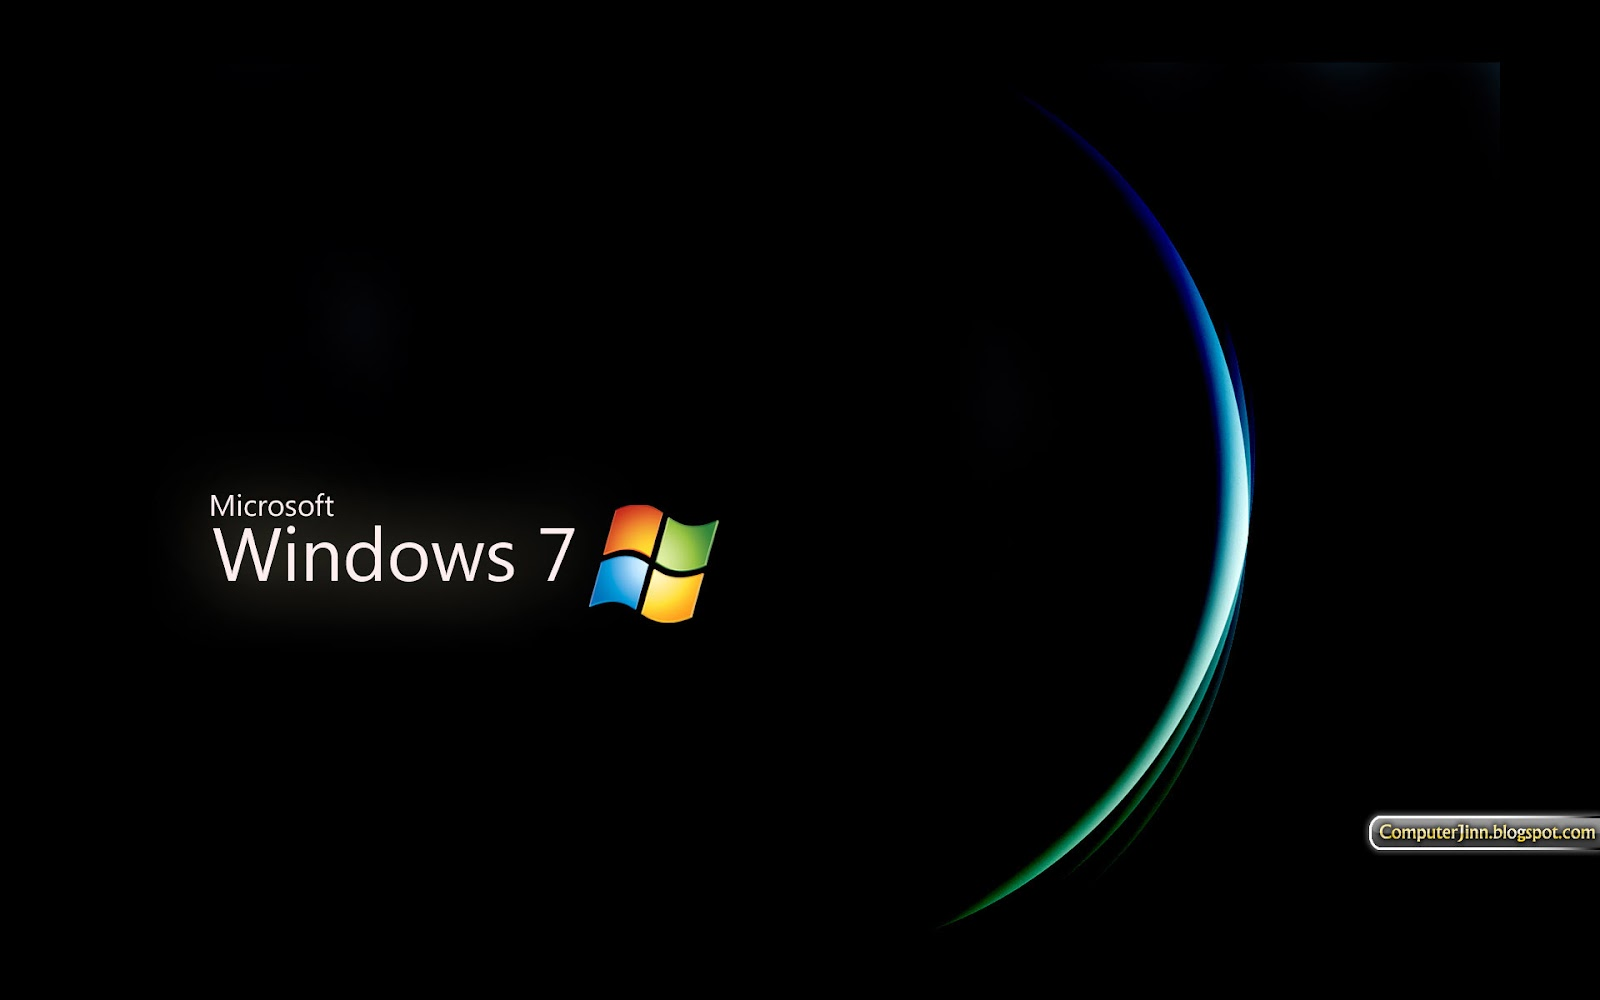 download windows-7 black and dark hd ~ it developers